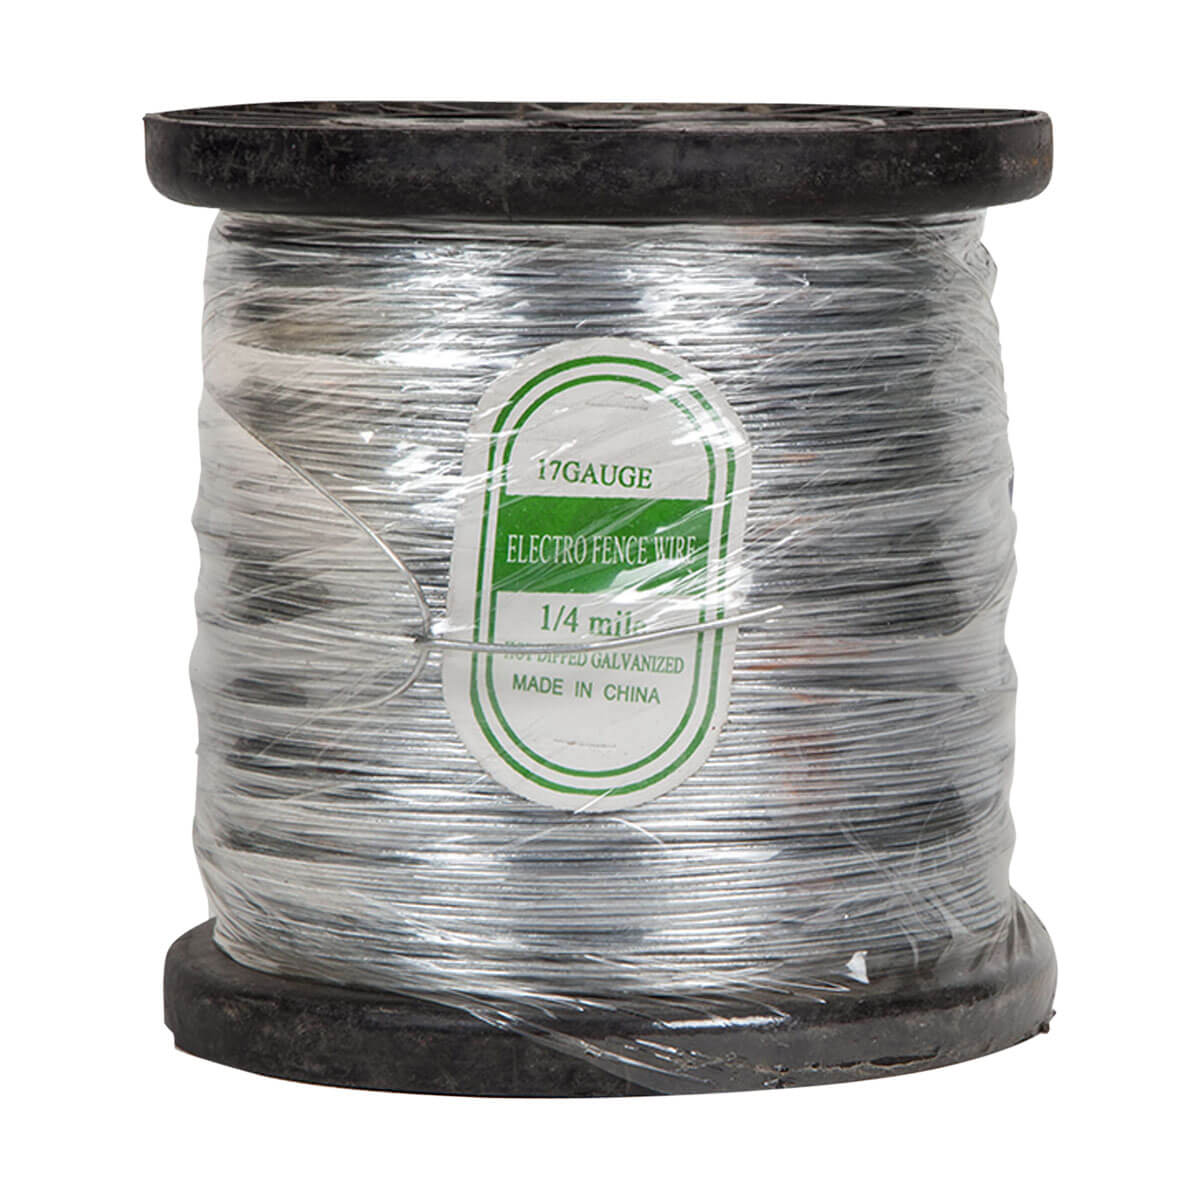 17 GA - 1/4 mile Electric Fence Wire